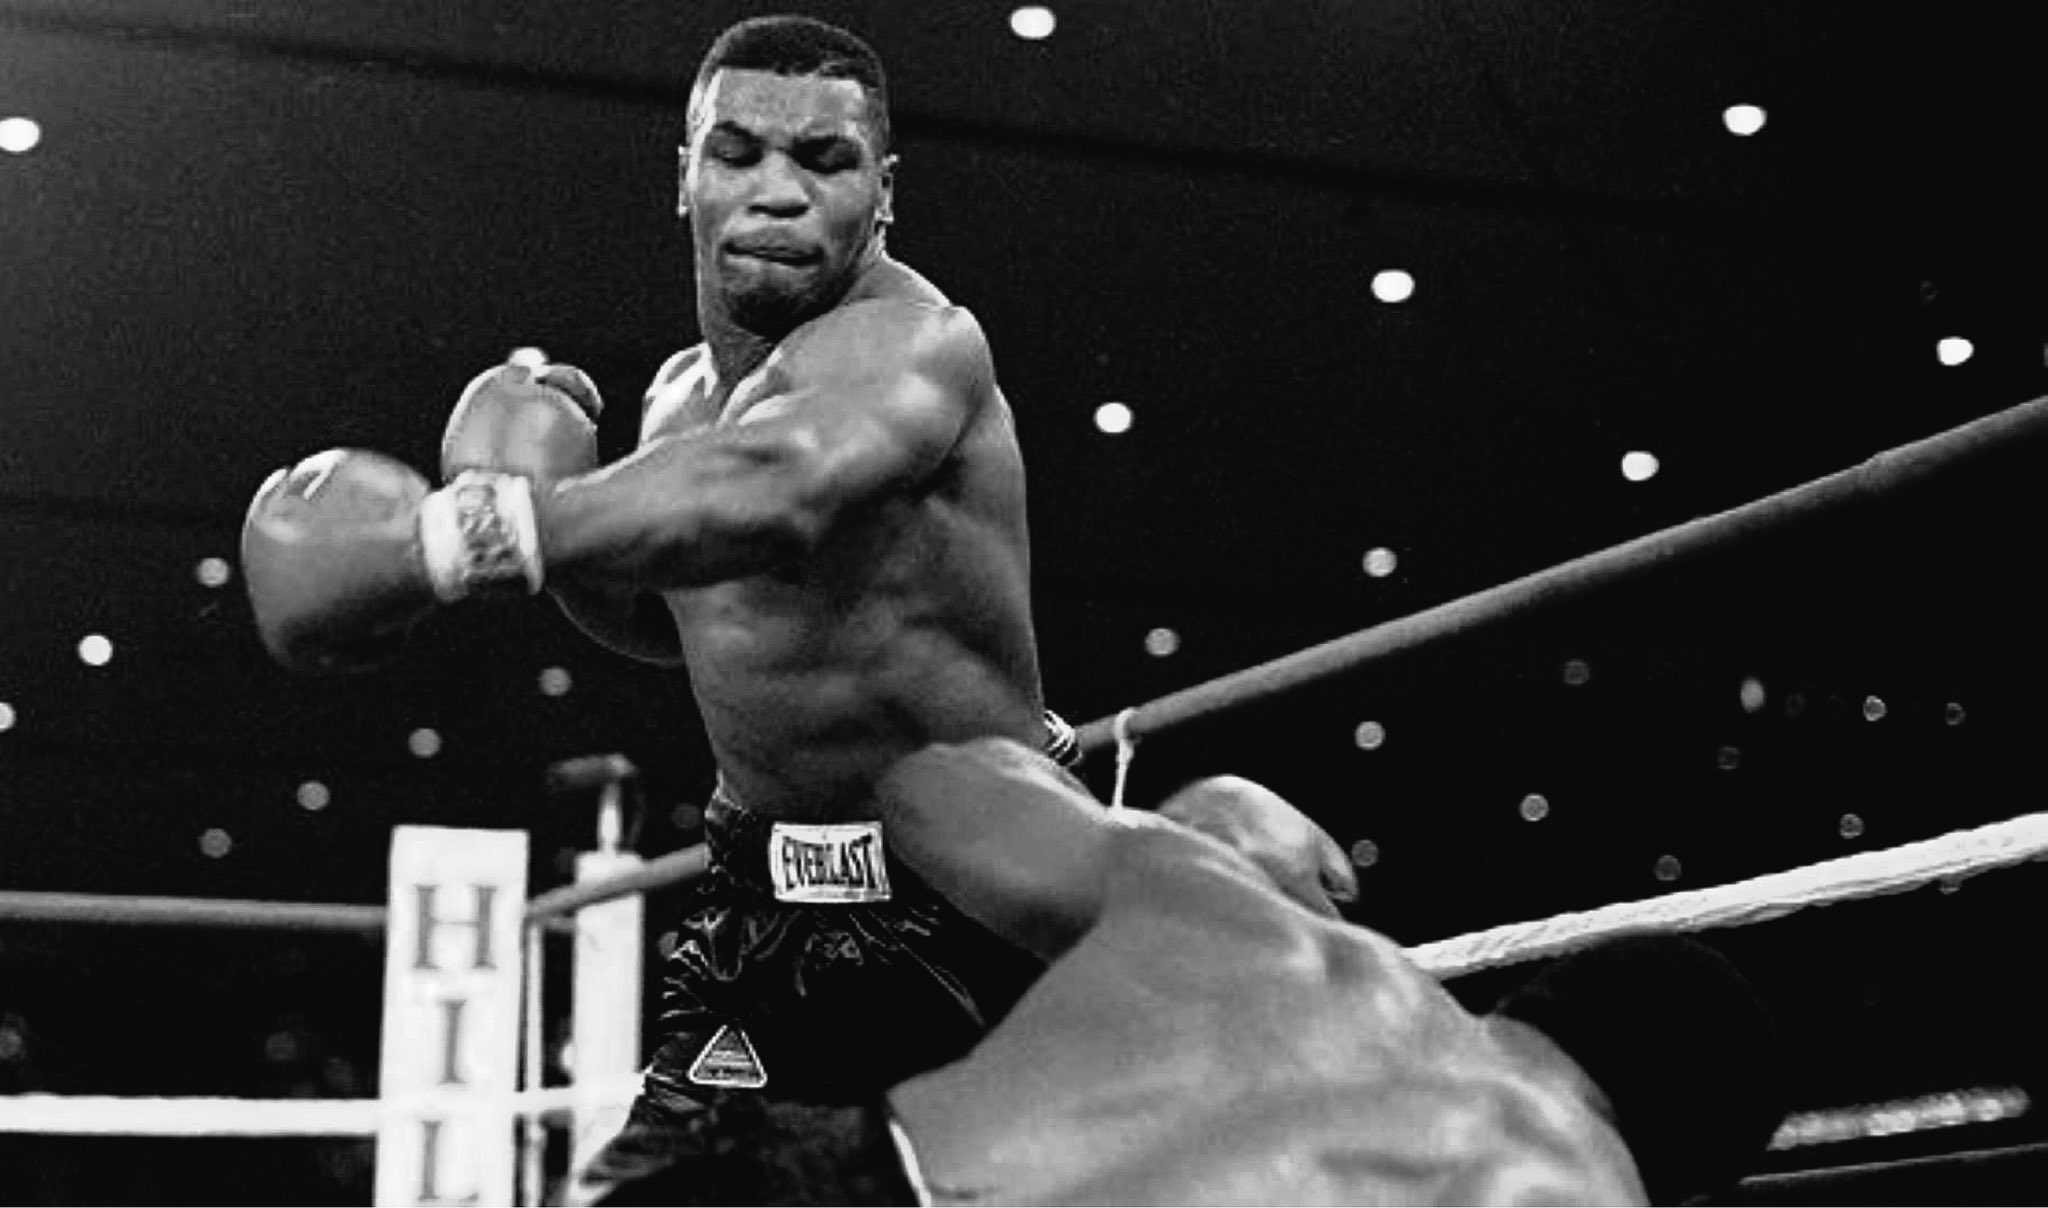 Happy birthday to perhaps the most feared fighter in combat sports history.  Happy 51st birthday to Iron Mike Tyson.